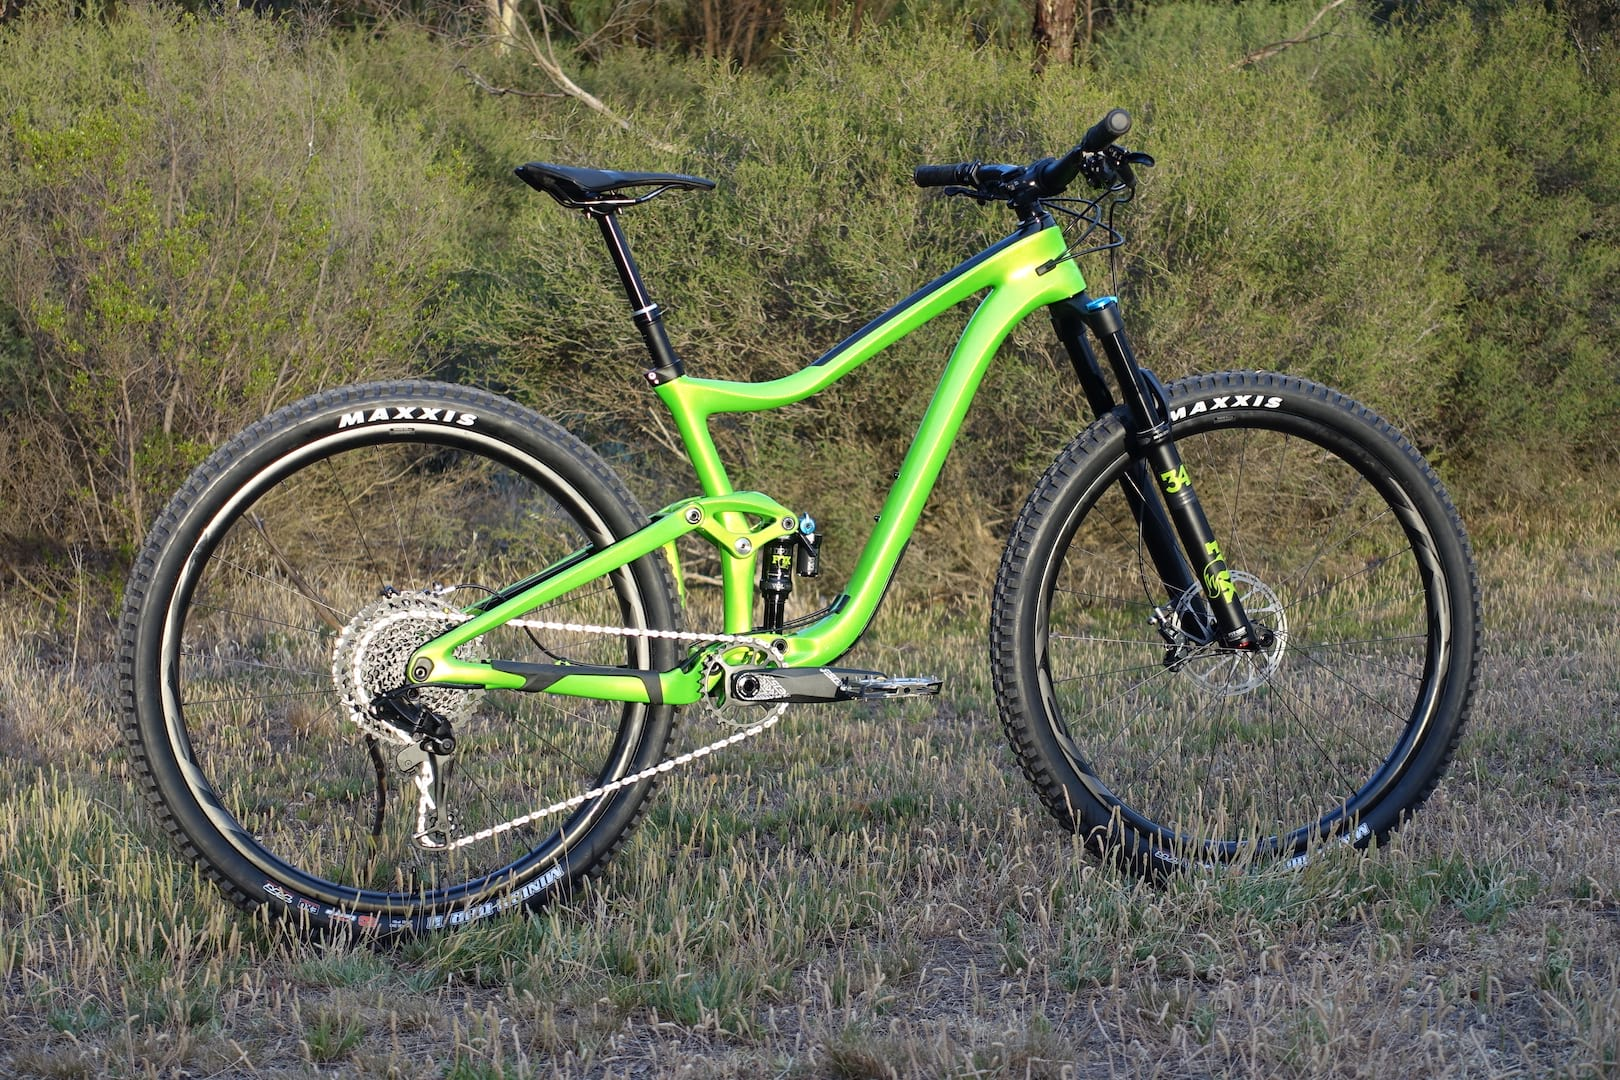 8aabc2e1408 Has Giant's latest 29er put you in a trance? Or are you definitely not green  with envy?